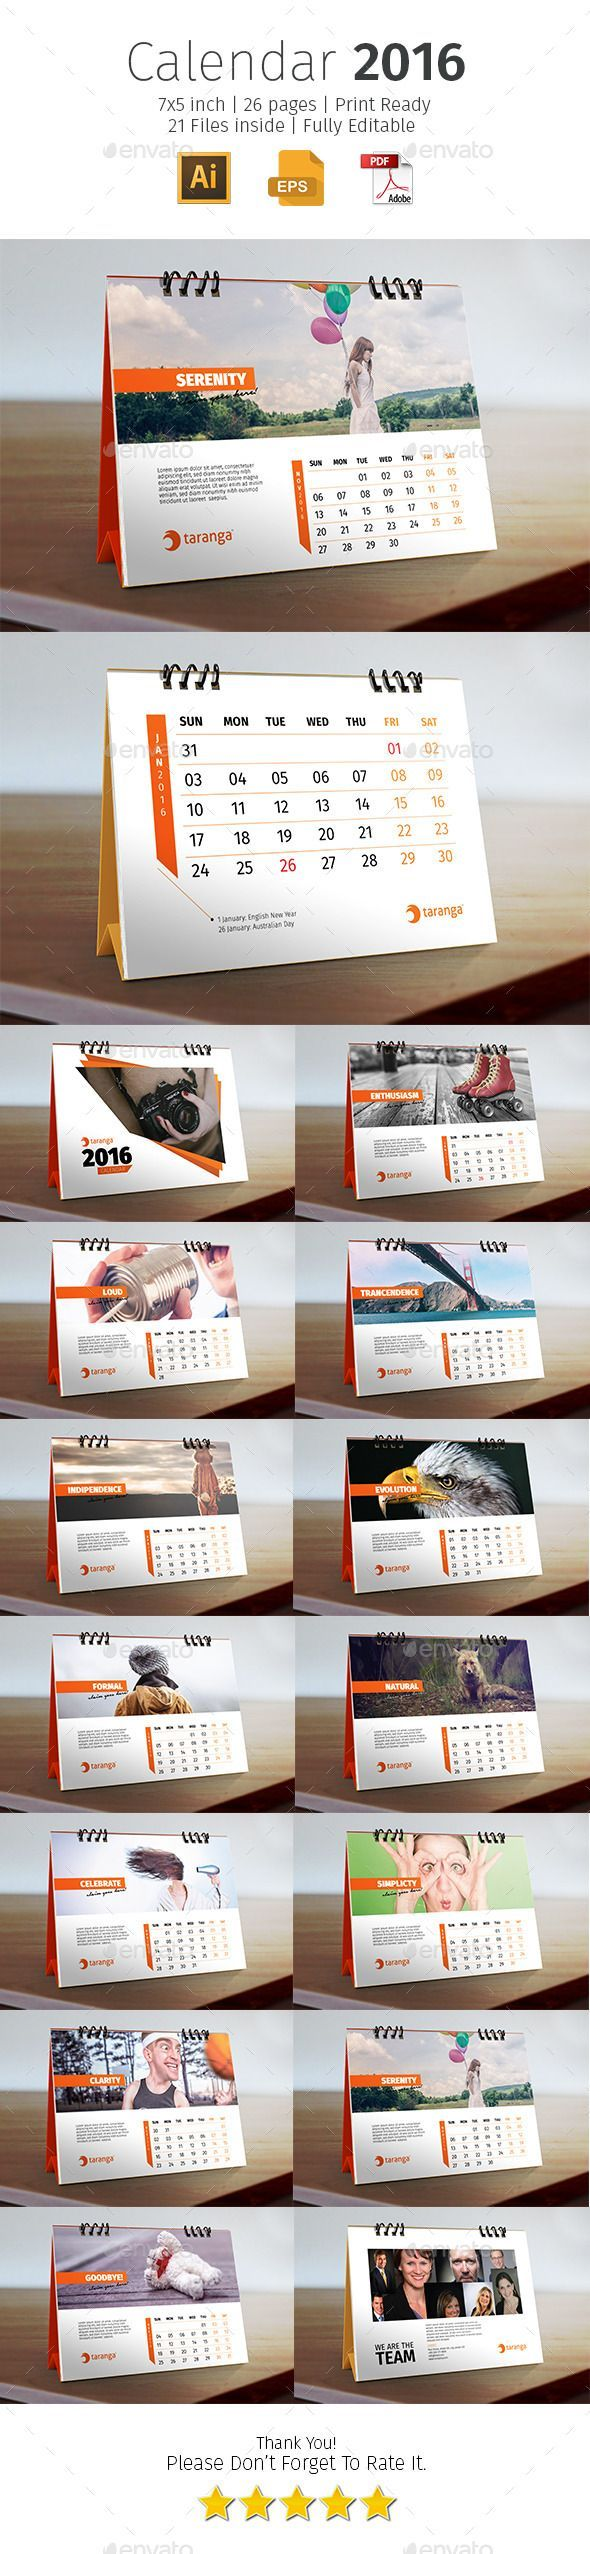 7 Best Moc Images On Pinterest Graphics Graph Design And Brand Printed Circuit Board Prototype Product Photosprinted 2016 Corporate Desk Calendar Template Download Http Graphicrivernet